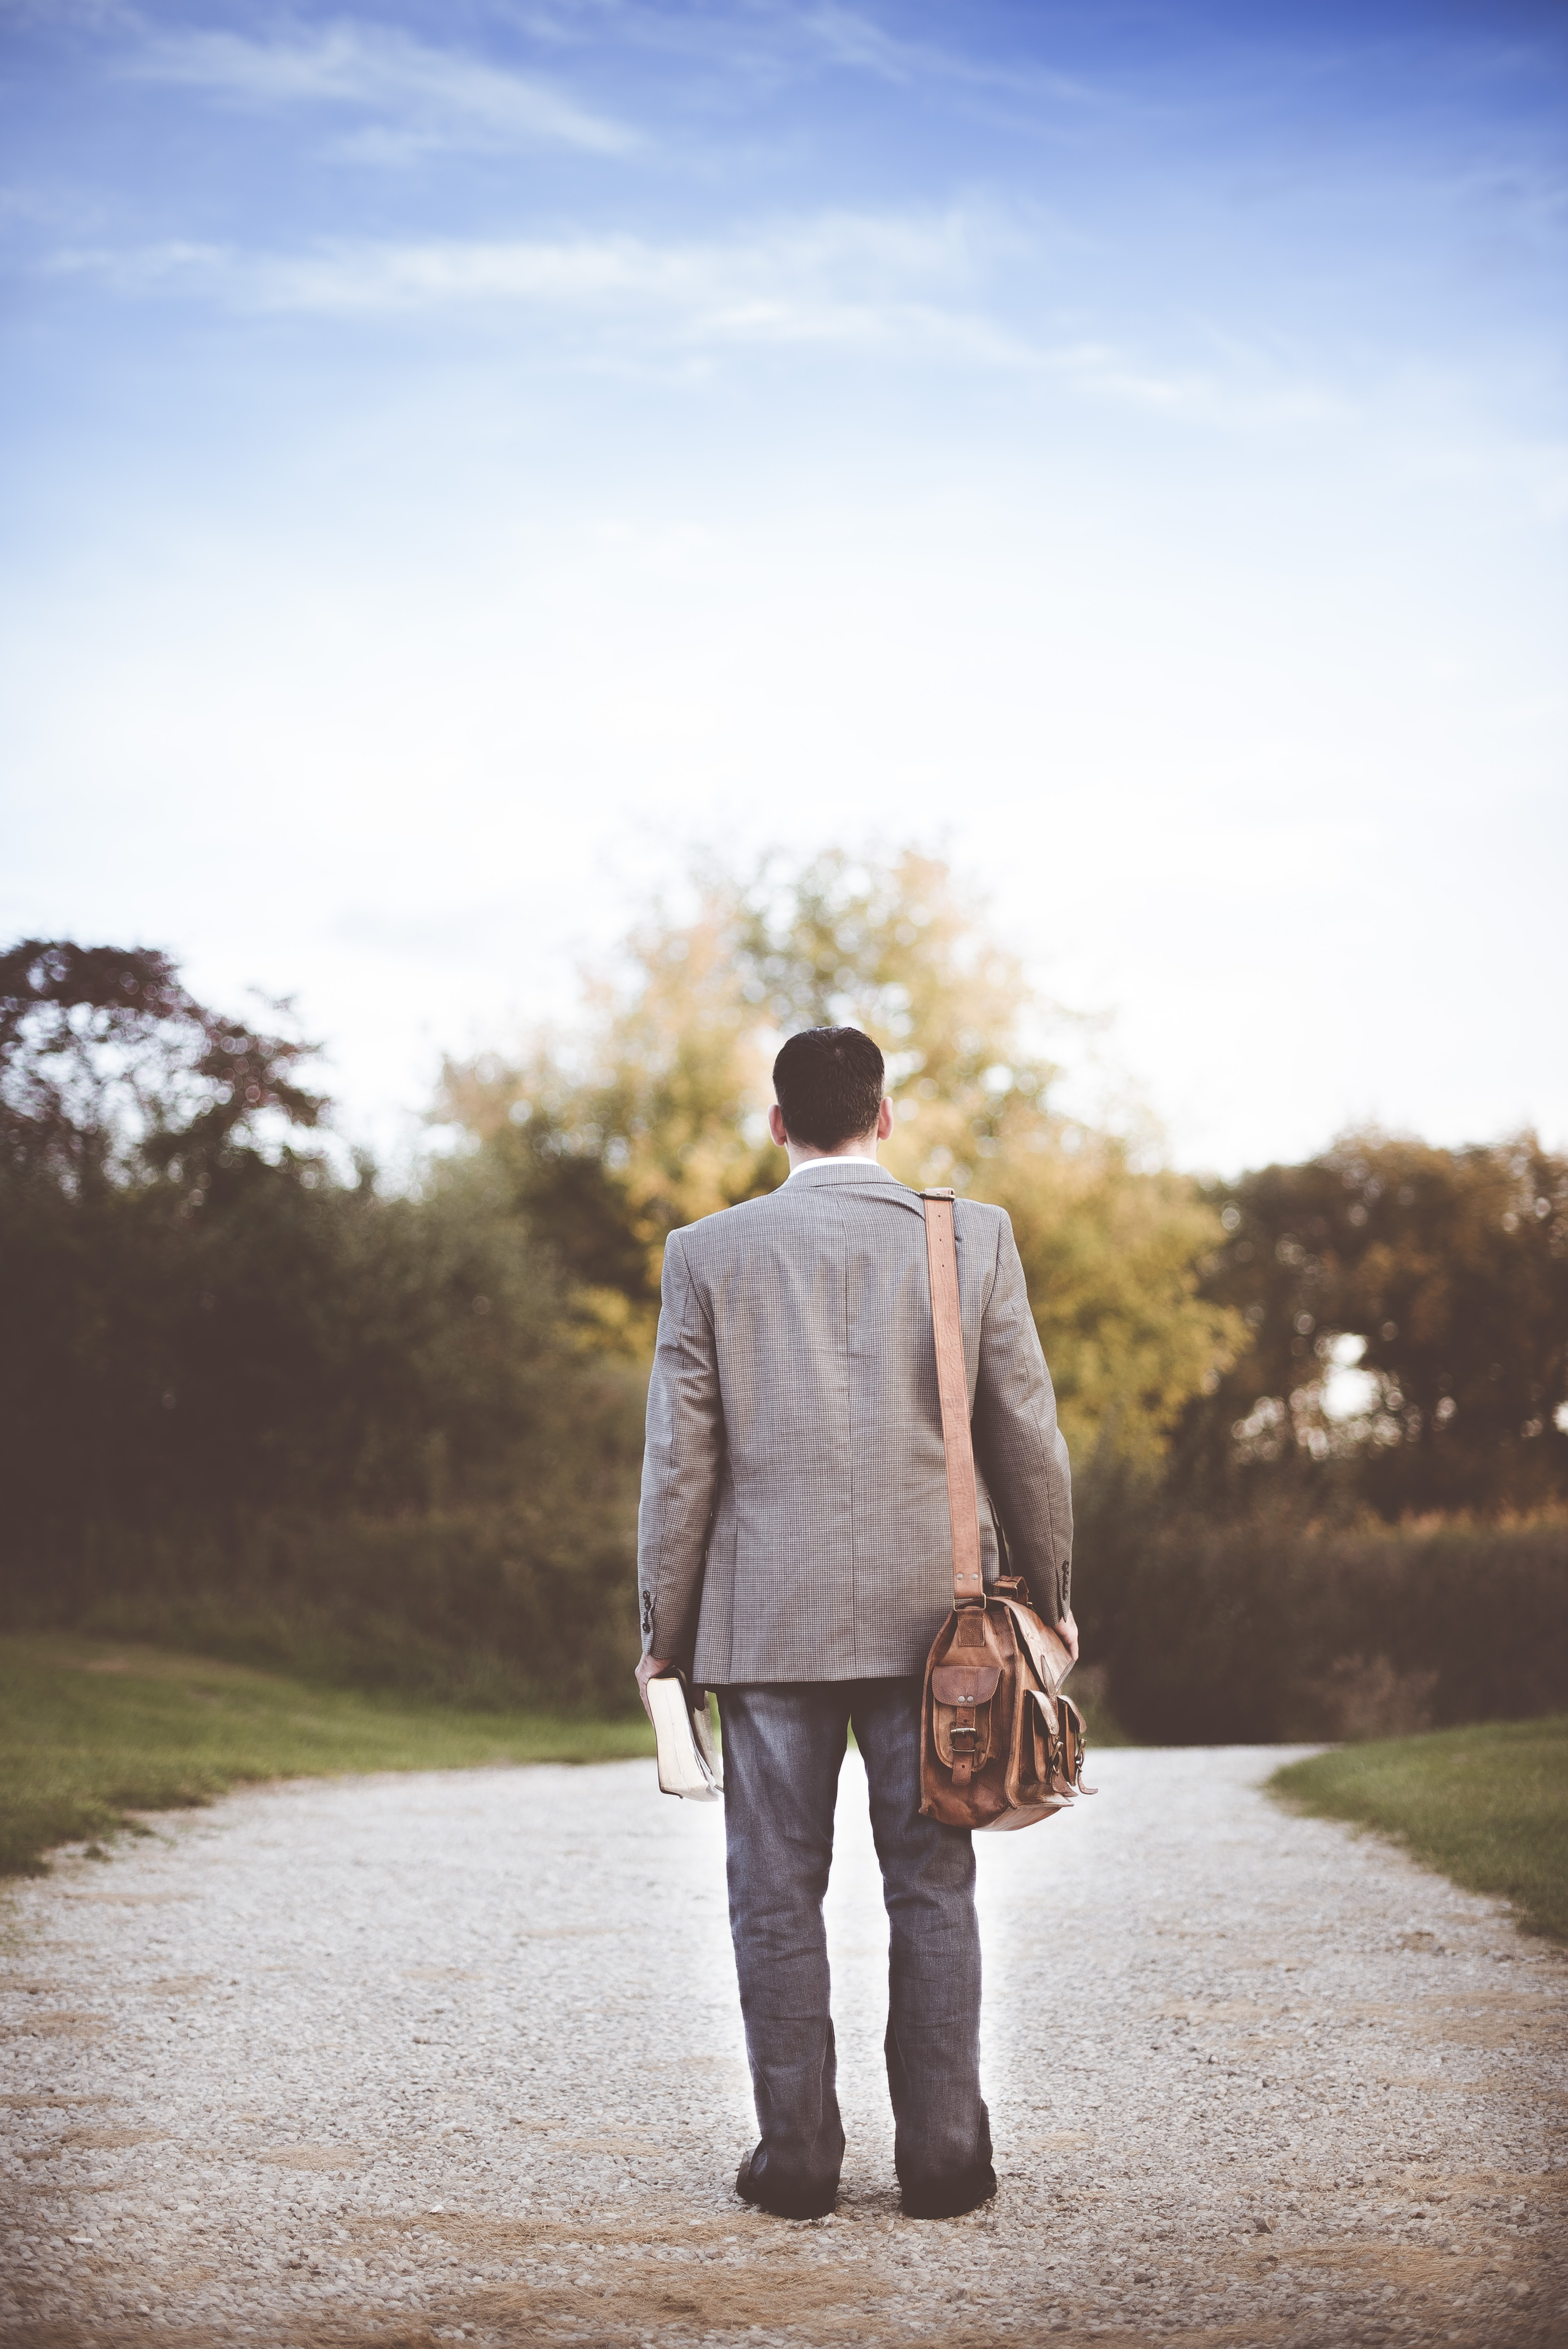 A man in a suit with a leather bag on his arm and a thick book in his hand on a dirt path